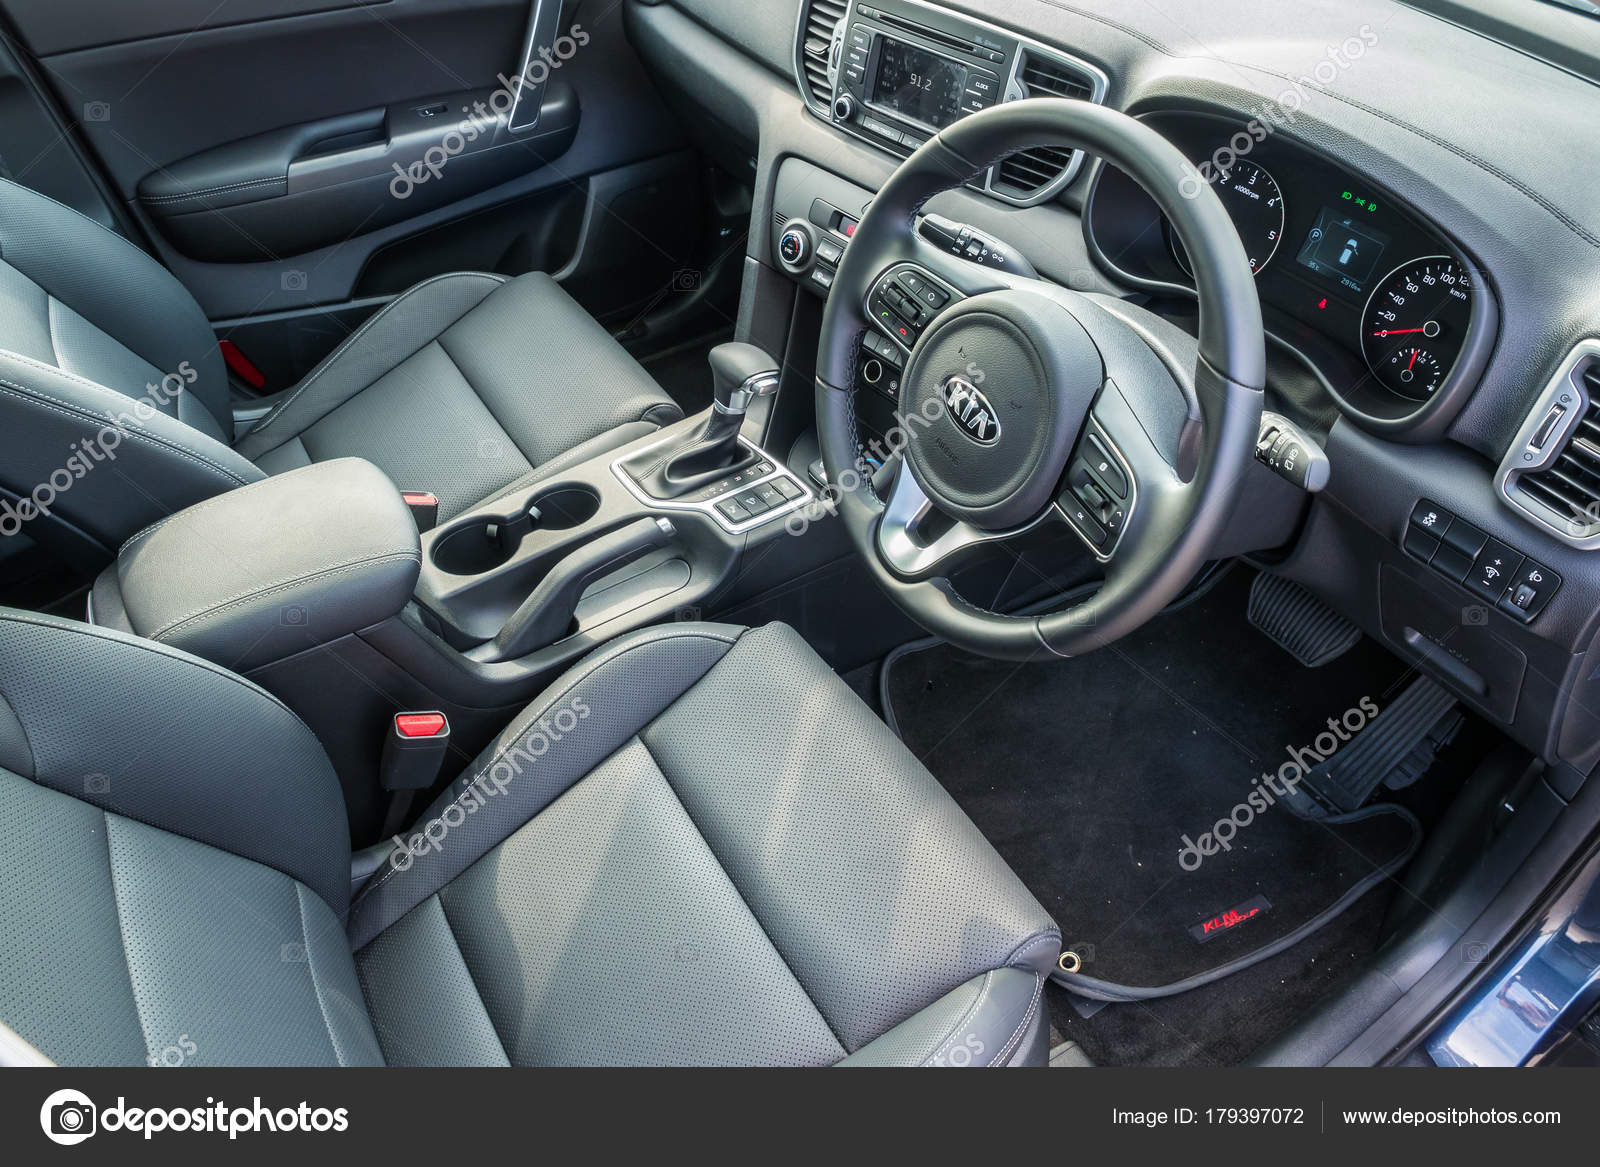 kia sportage 2017 interior stock editorial photo. Black Bedroom Furniture Sets. Home Design Ideas